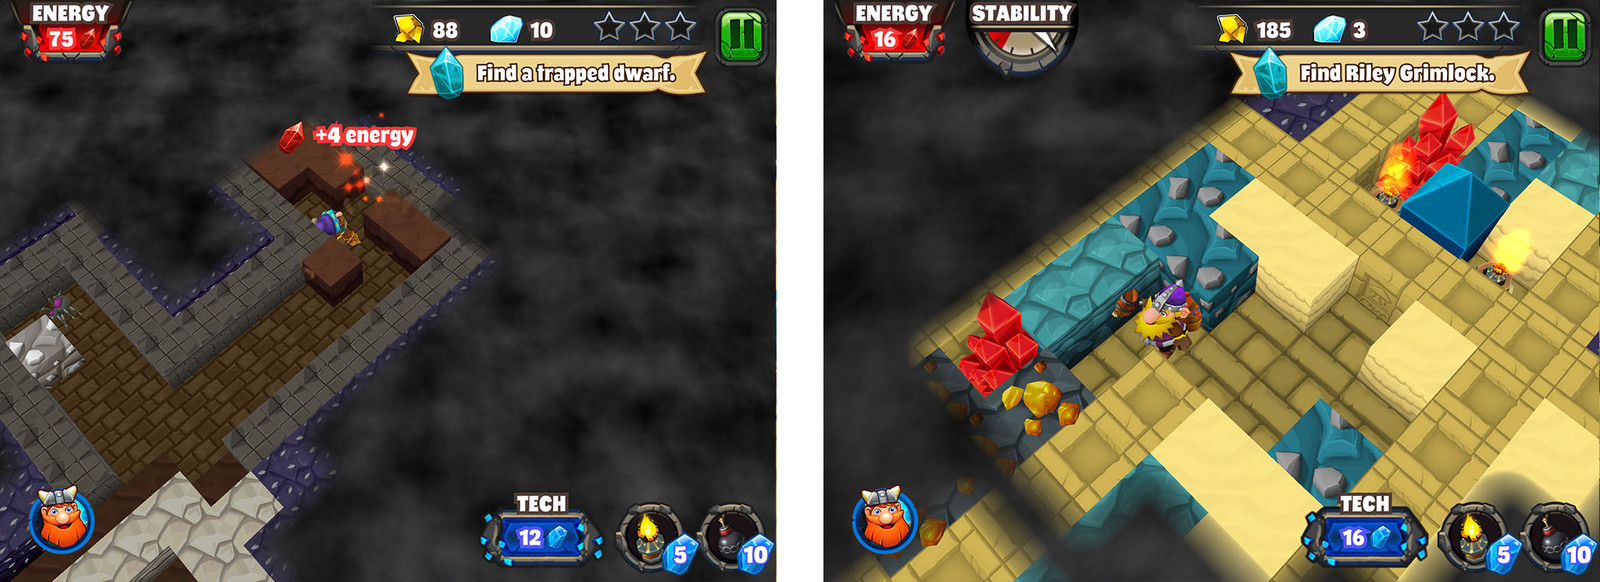 Dwarven Den: Top 10 tips, hints, and cheats to blazing a path to buried treasure!